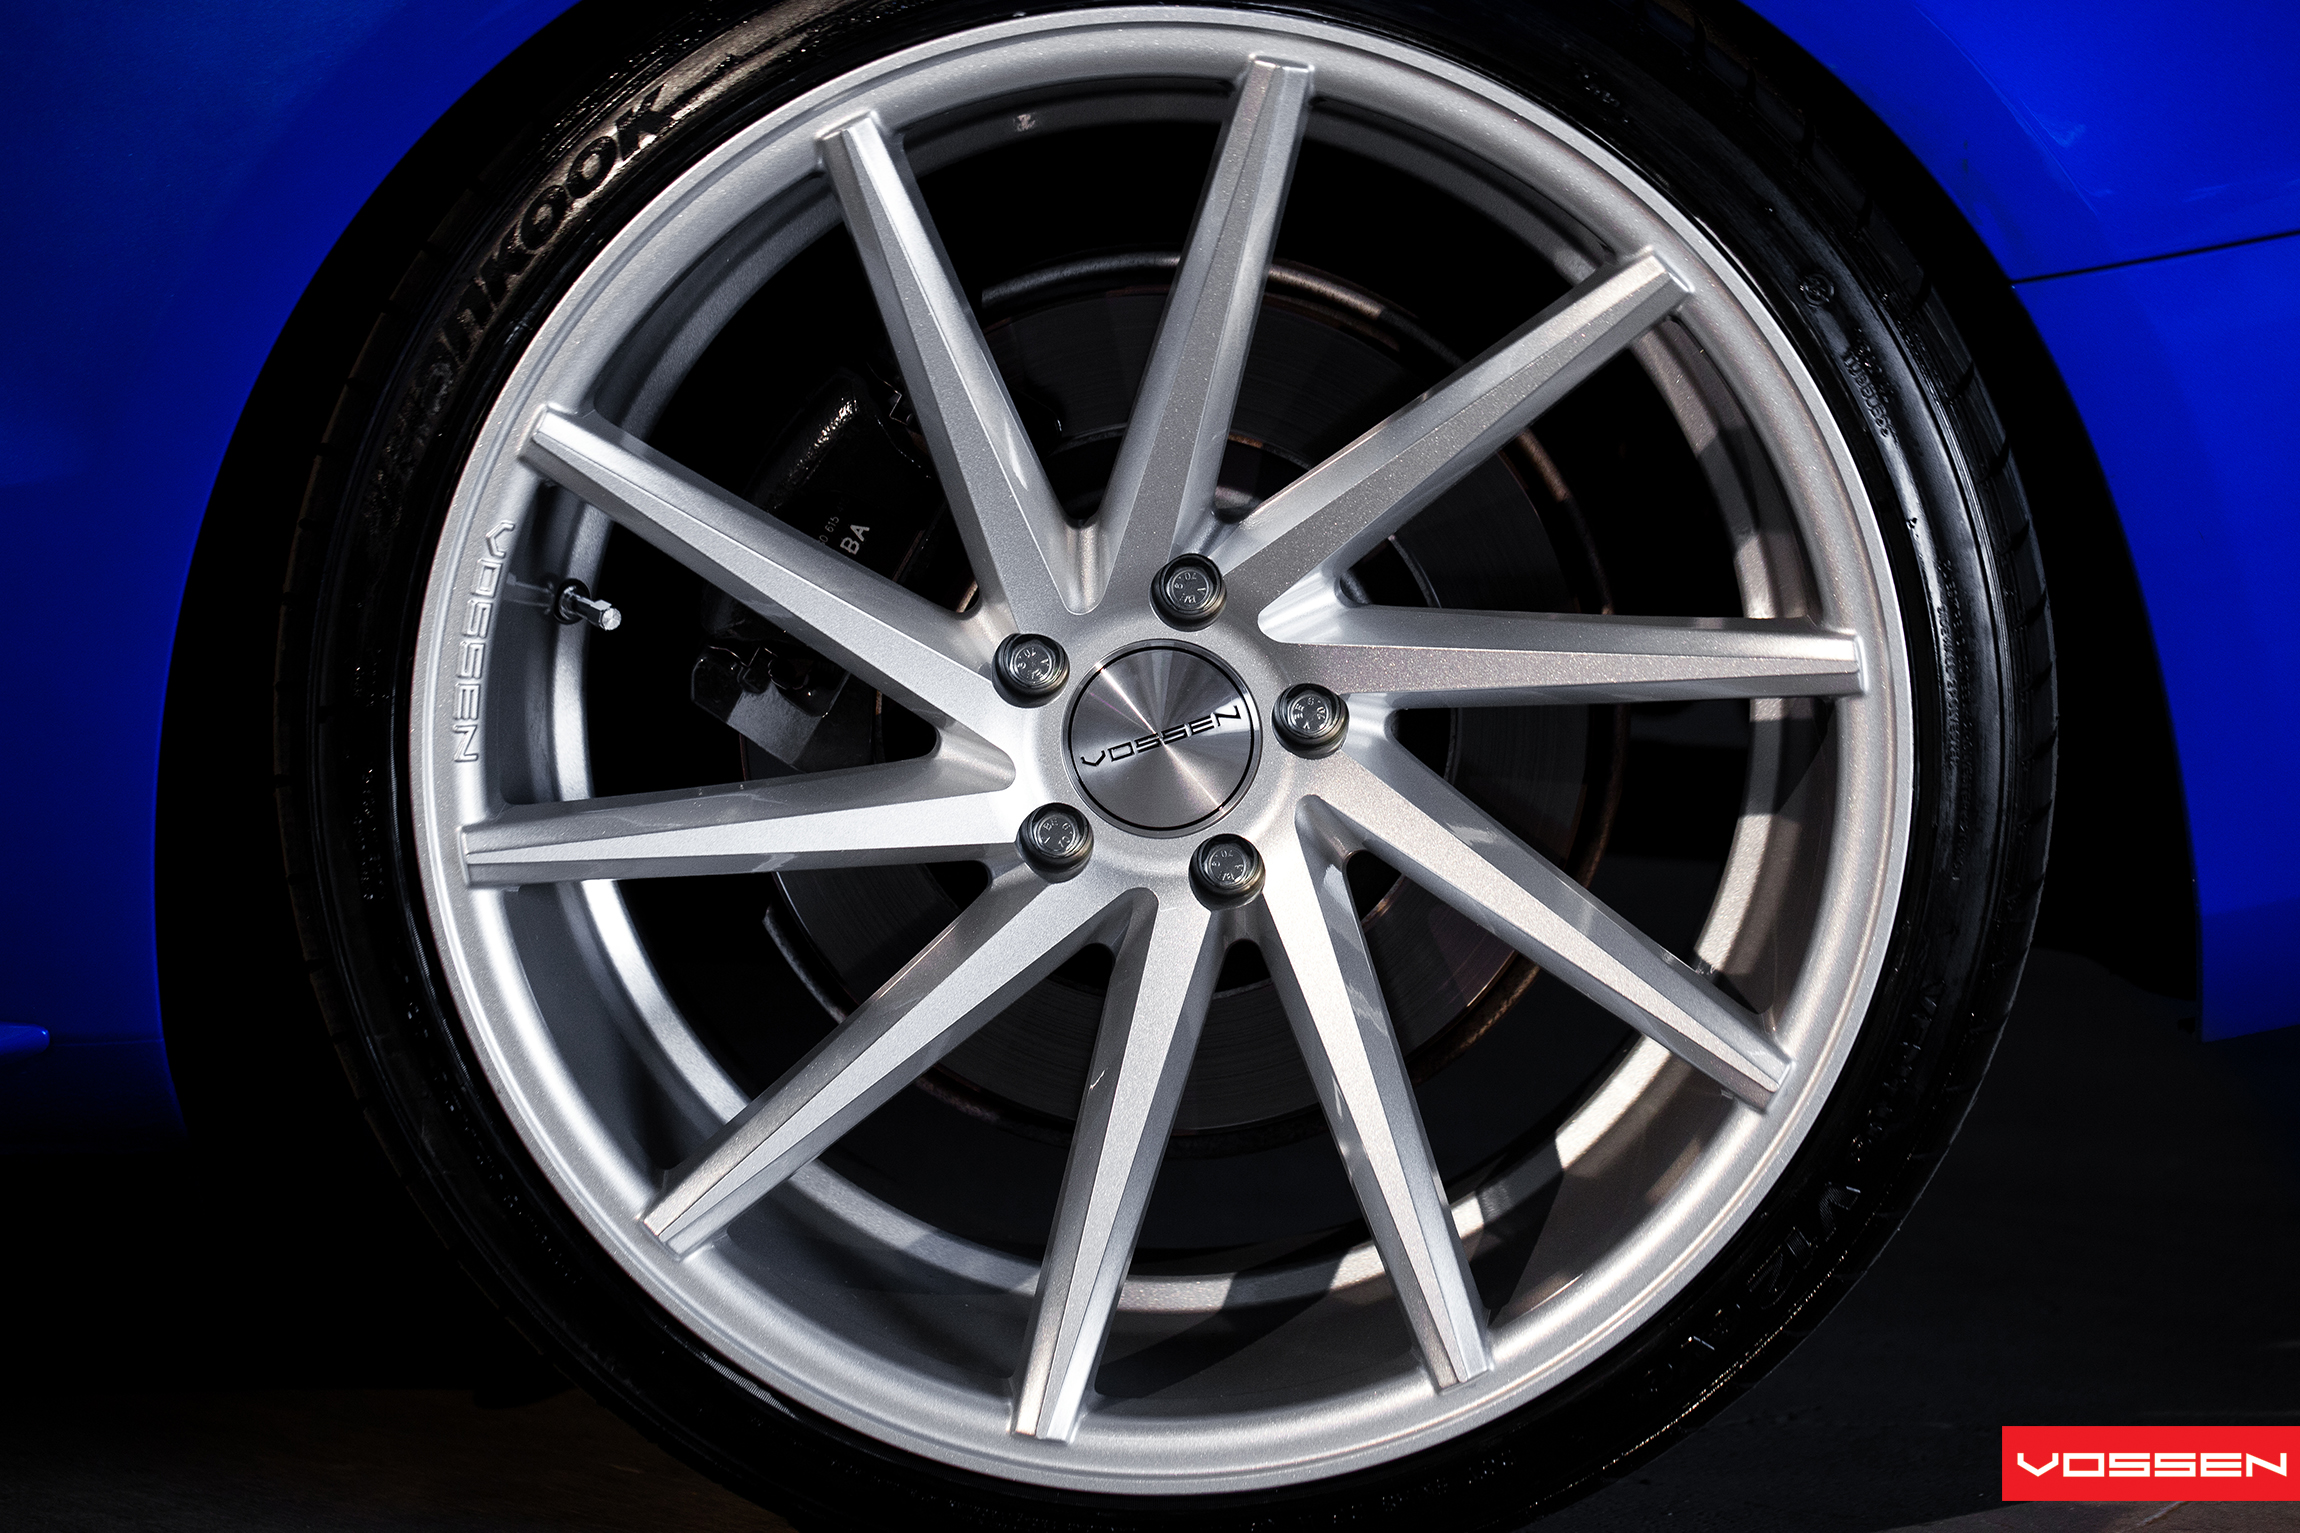 Cvt 171 Vossen Japan オフィシャルサイト Luxury High Performance Wheel